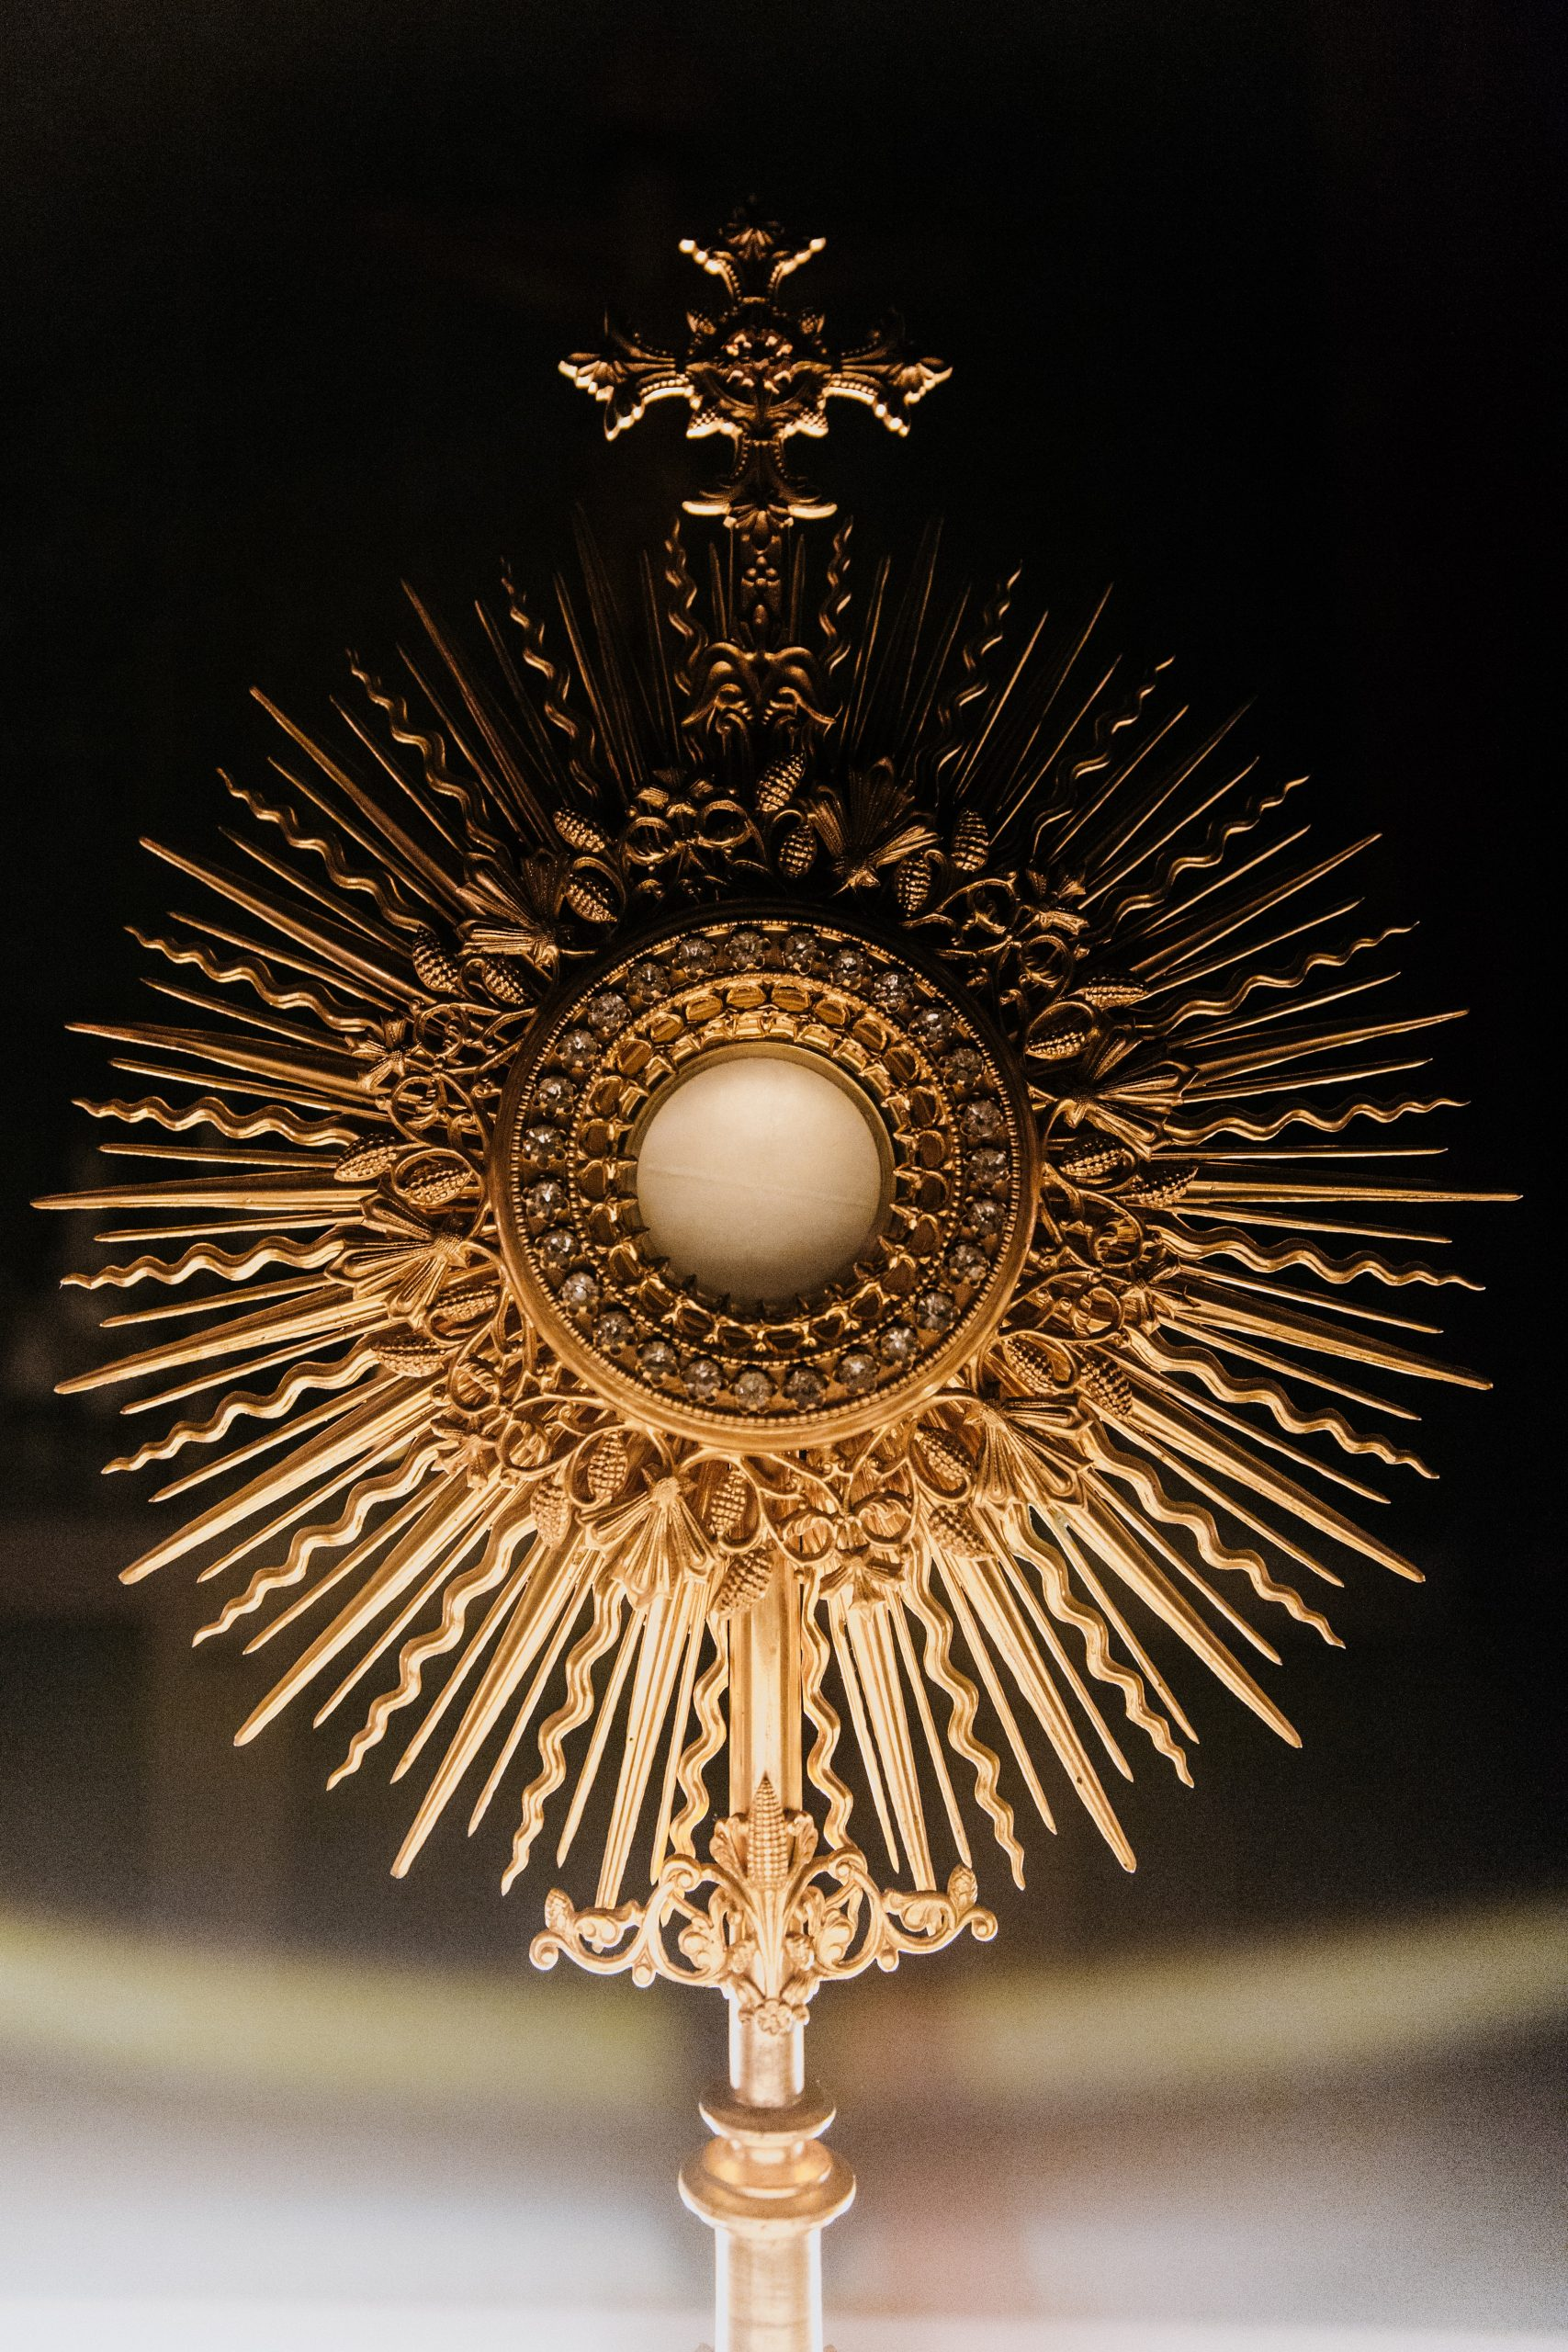 Prayer in front of the Blessed Sacrament